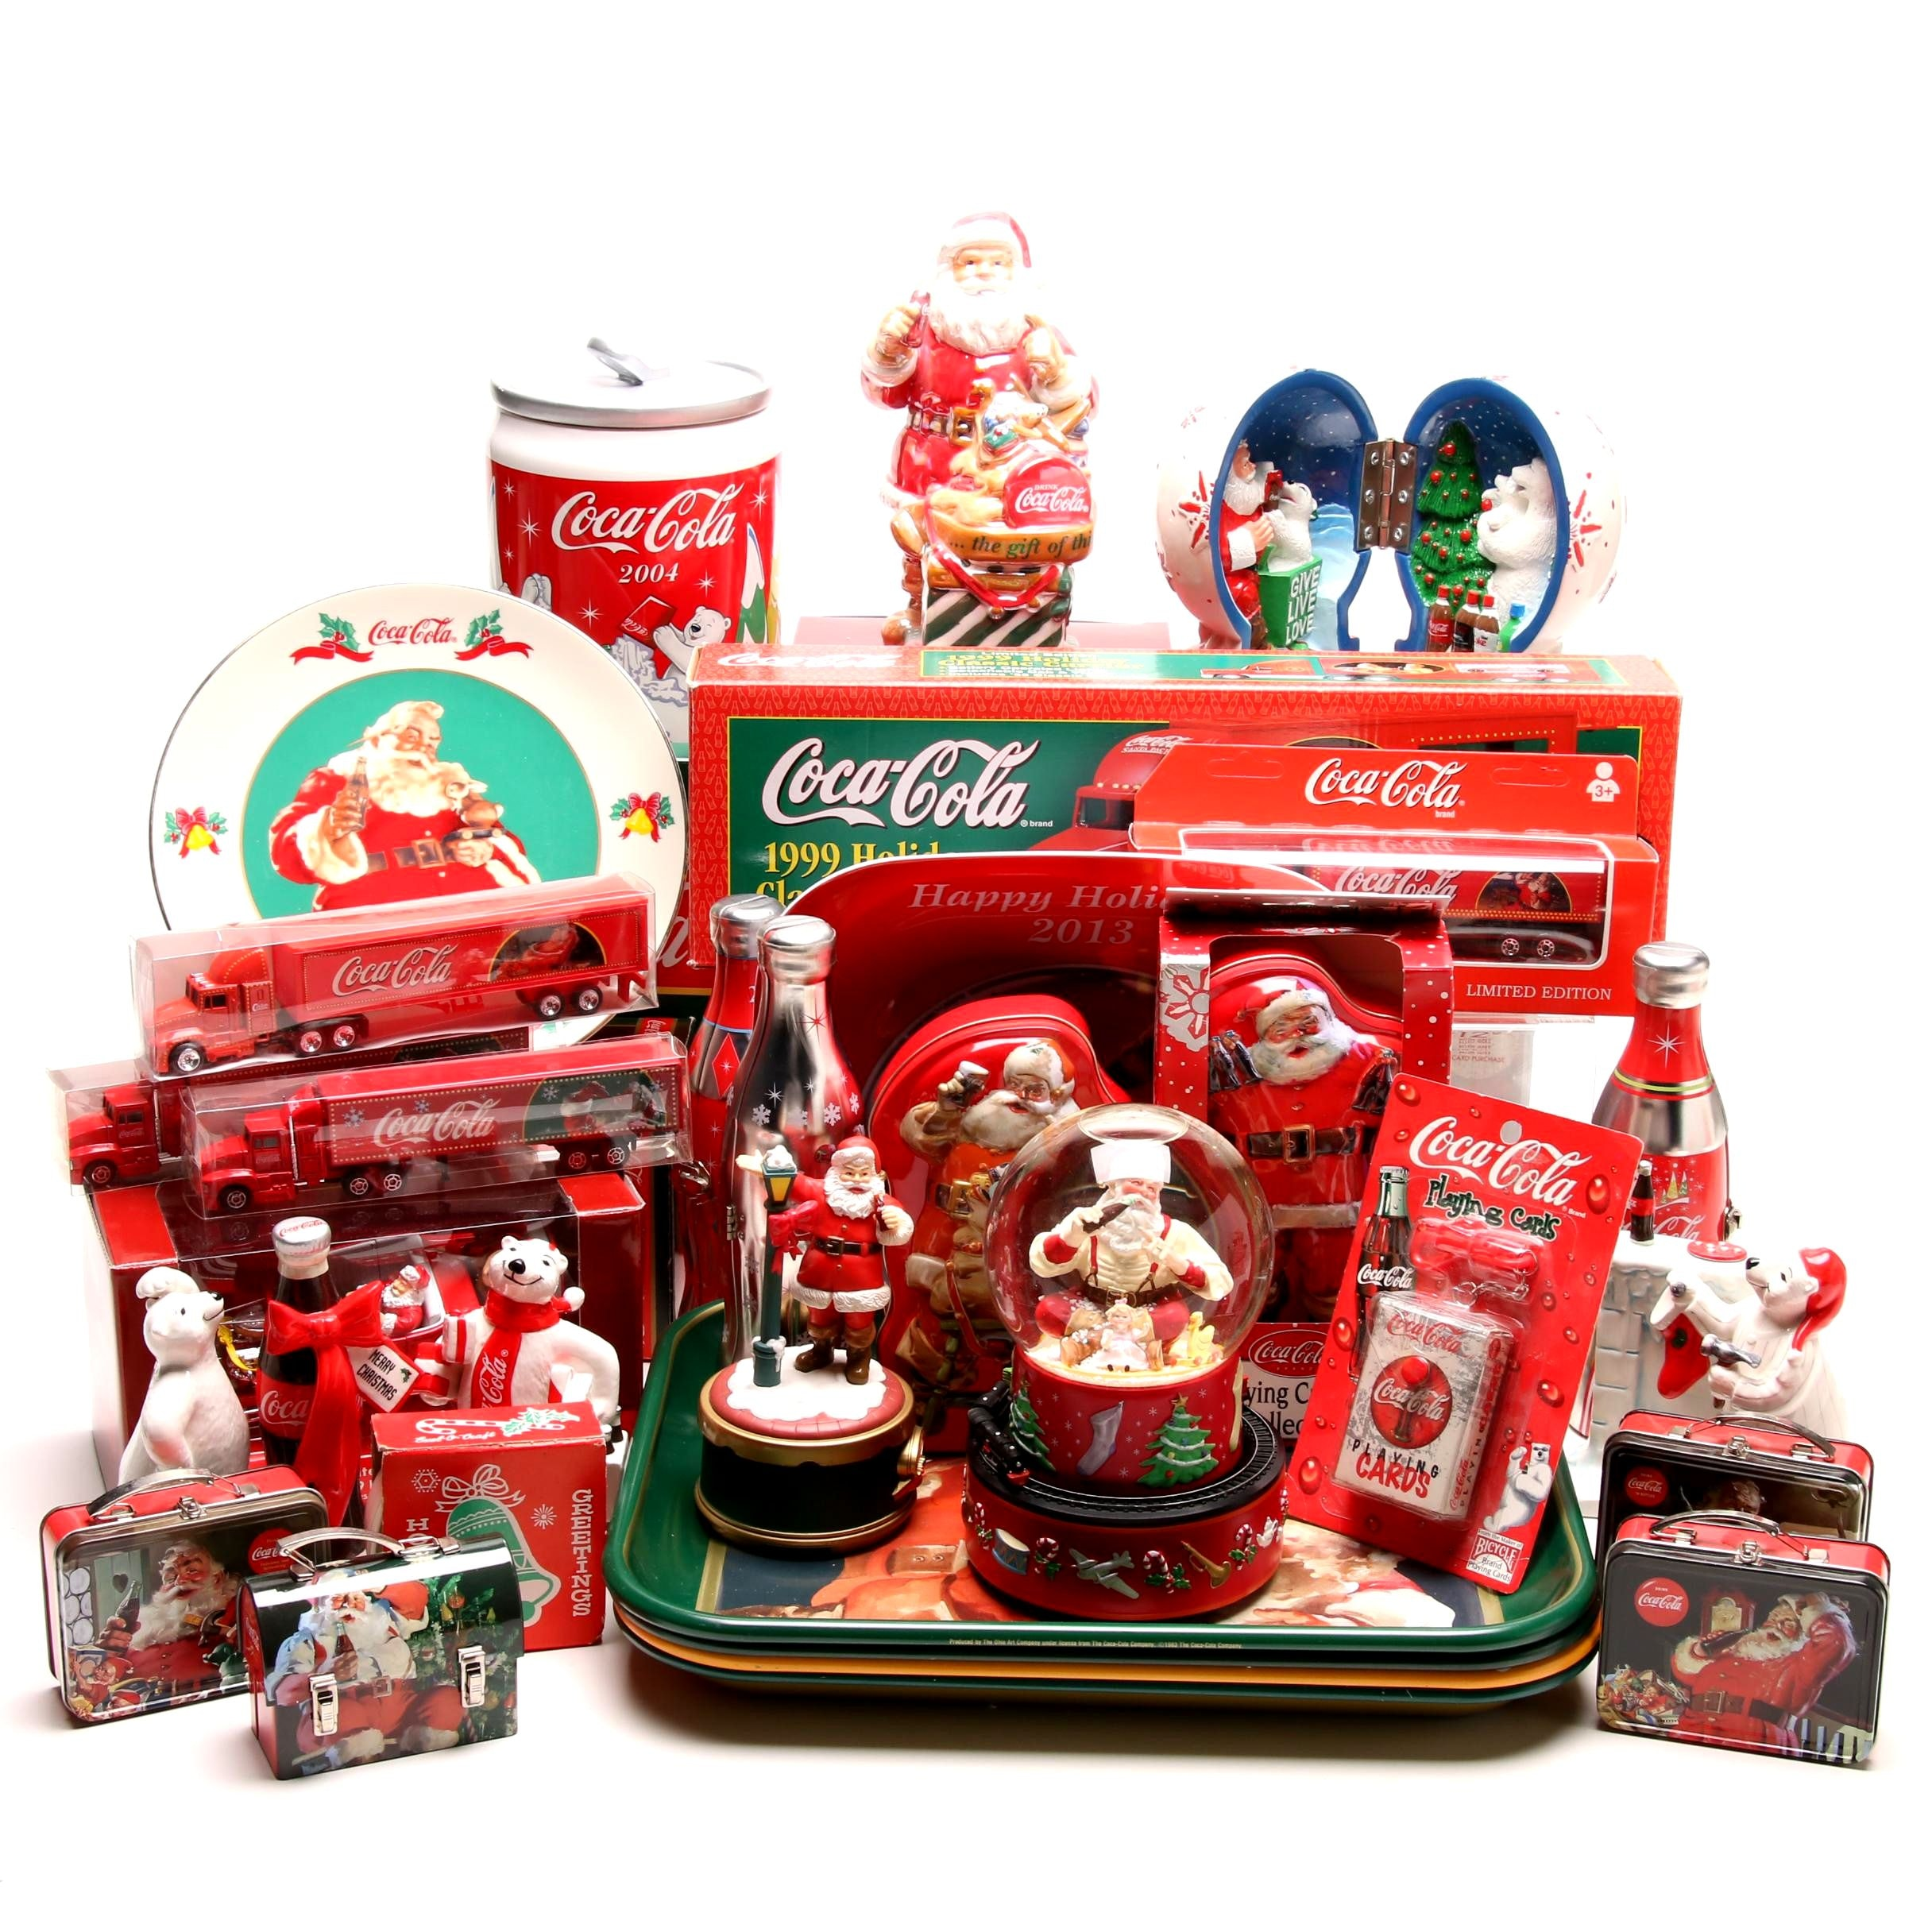 Coca-Cola Winter and Christmas Themed Collectibles